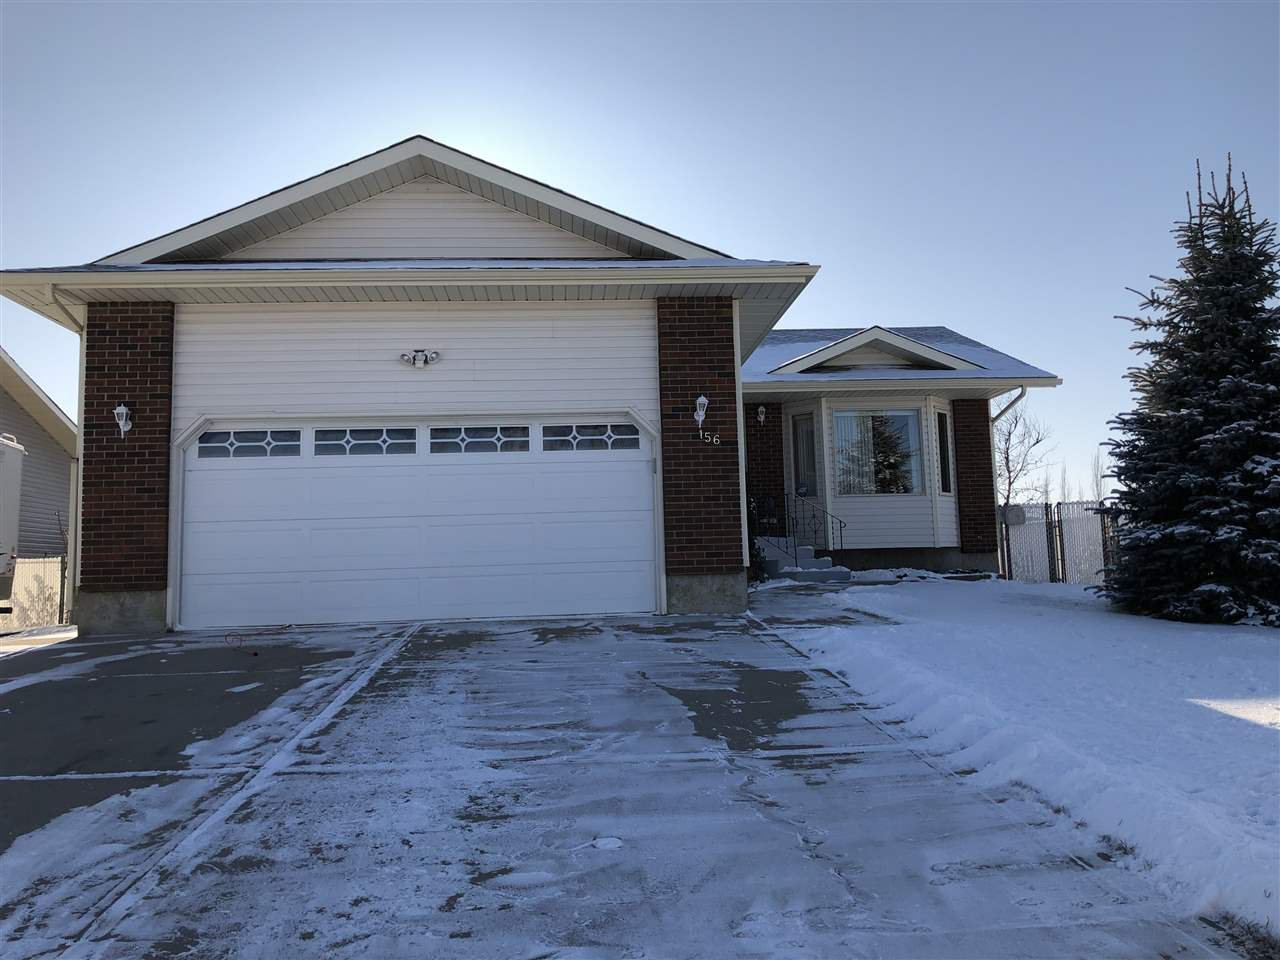 Main Photo: 156 Northbend Drive: Wetaskiwin House for sale : MLS®# E4164098